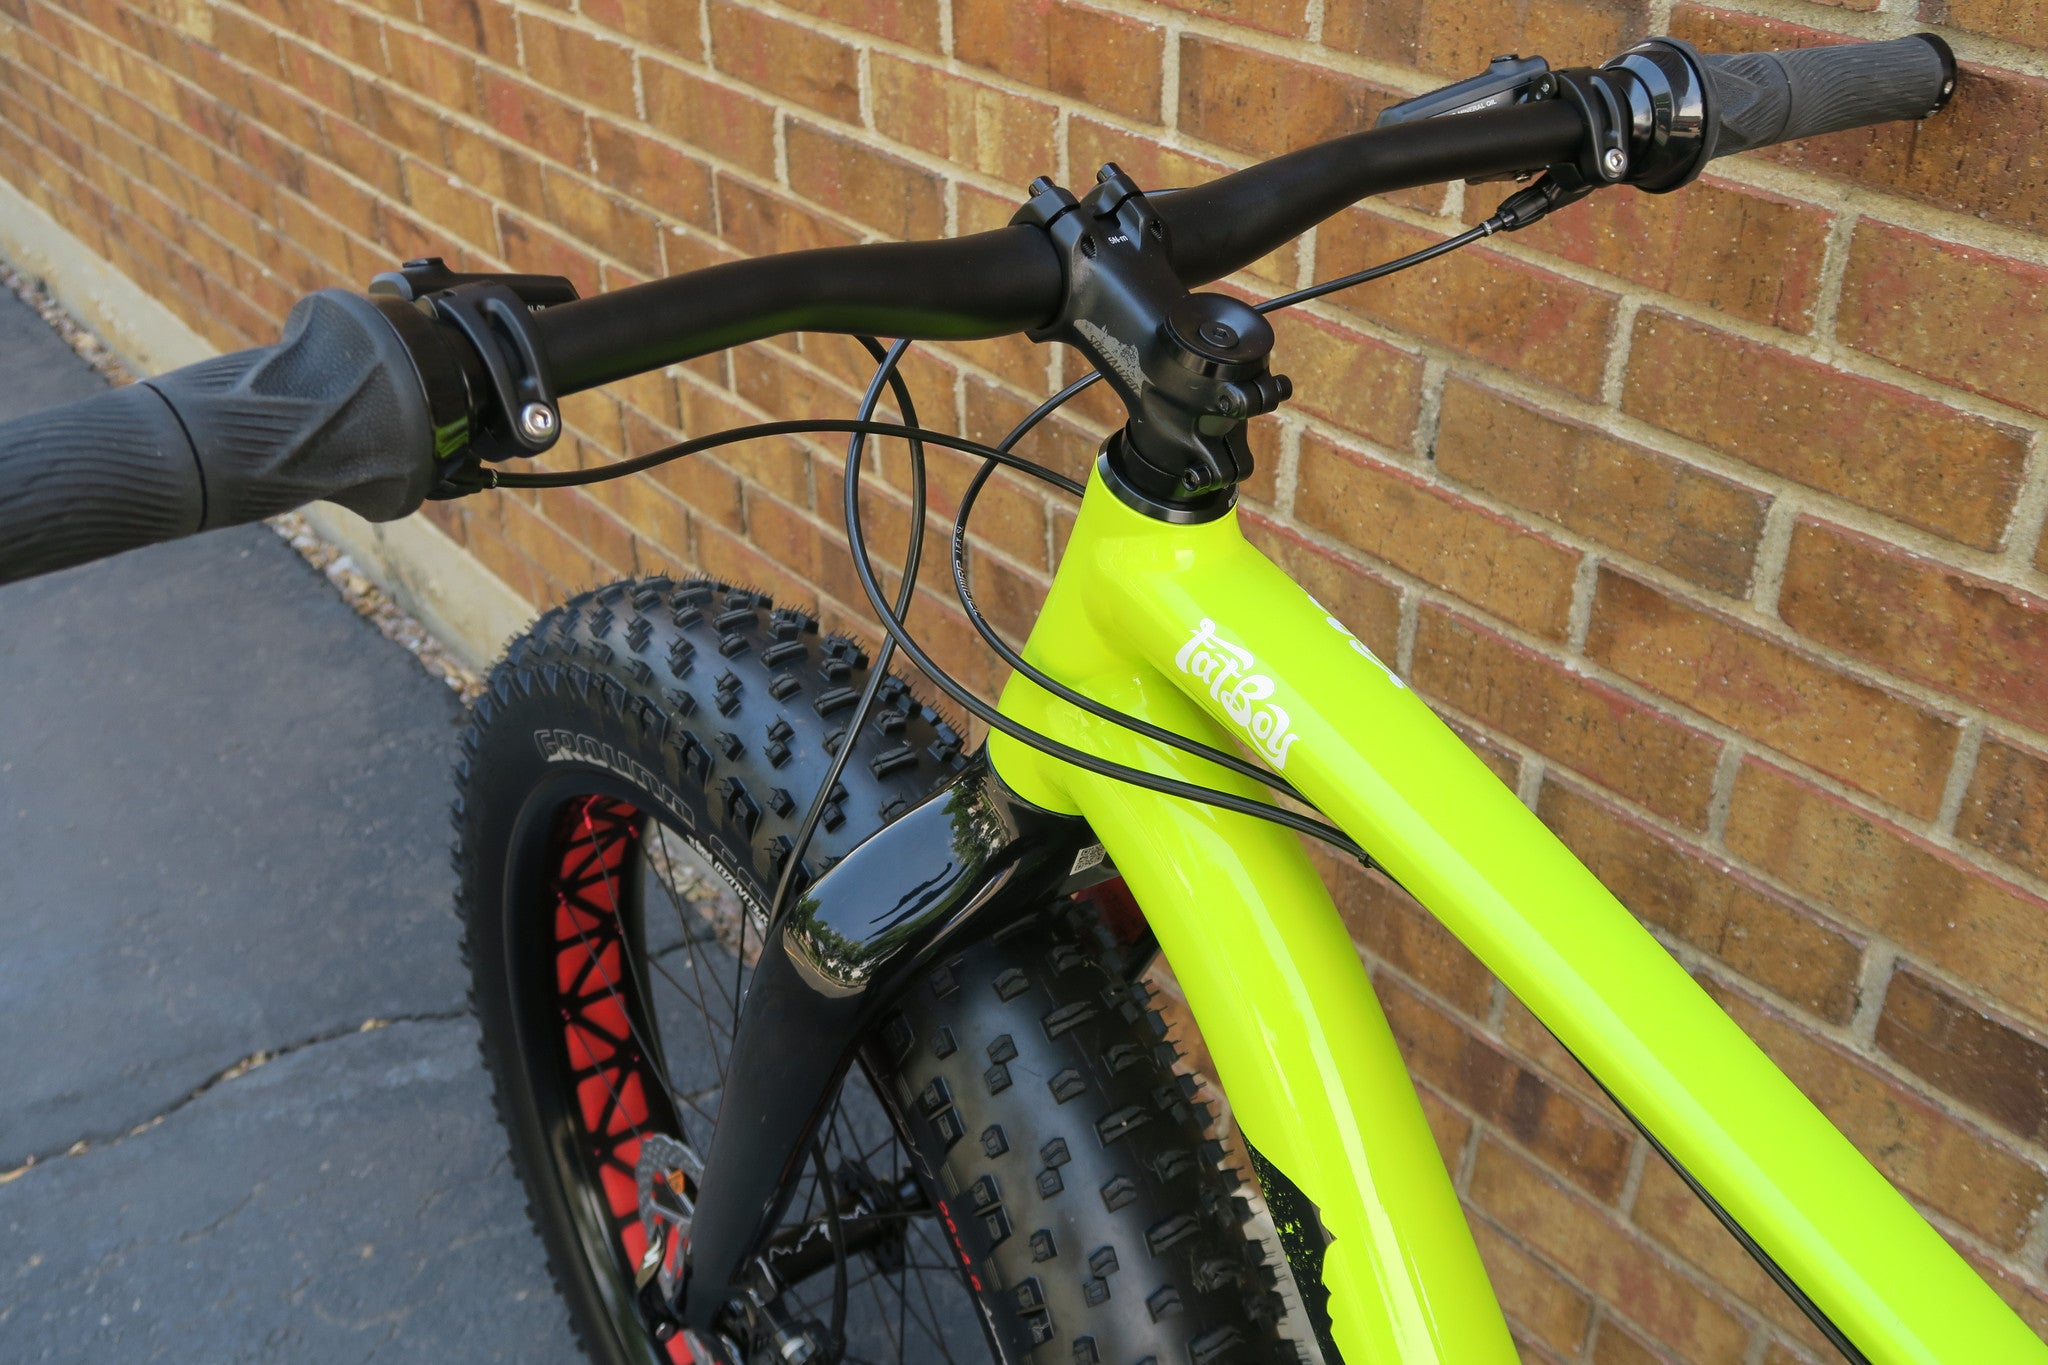 2015 SPECIALIZED FATBOY PRO / EXPERT FATBIKE